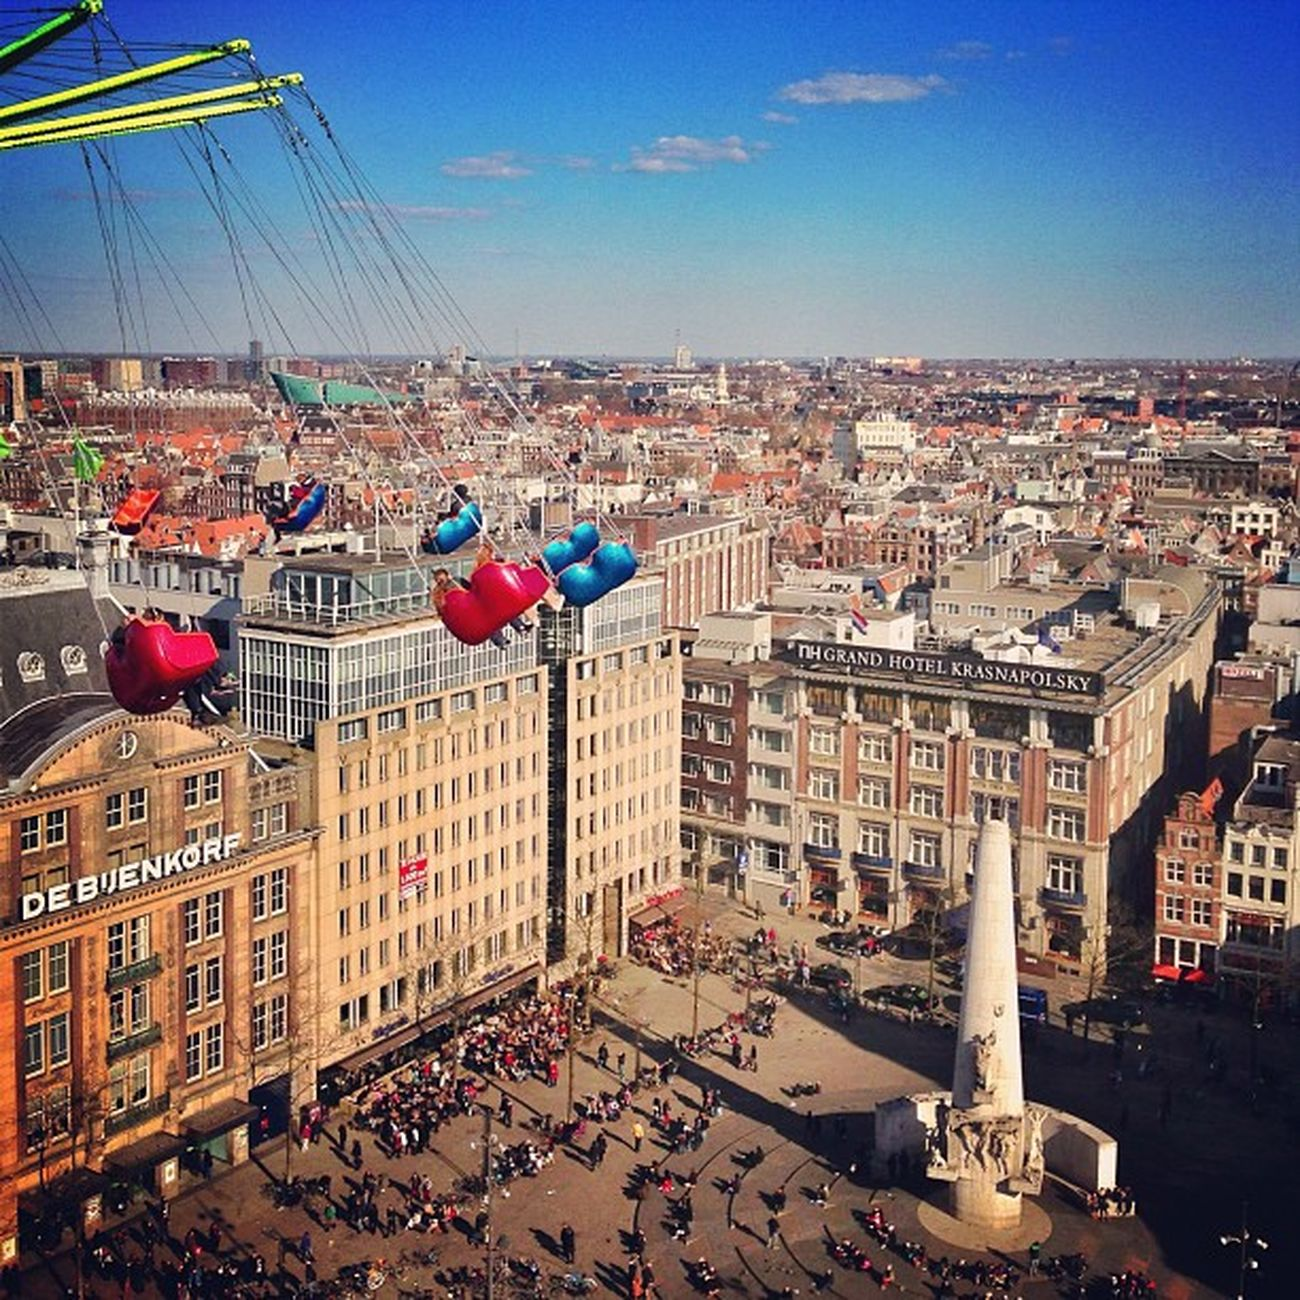 Let's have ride ???? Dam Square from #diamond #wheel #damsquare #amsterdam #alan_in_amsterdam #contestgram #dotz #gf_daily #gang_family #gramoftheday #holland #igers #ic_cities #igholland #igersholland #insta_holland #o2trains #ferriswheel Damsquare O2trains Amsterdam Worldwidephotowalk Holland Gramsterdam Ferriswheel Iaminamsterdam Wheel Mokummagazine Diamond Alan_in_amsterdam Gang_family Insta_holland Gf_daily Igholland Igers Contestgram Igersholland Piclab Dotz Ic_cities Gramoftheday